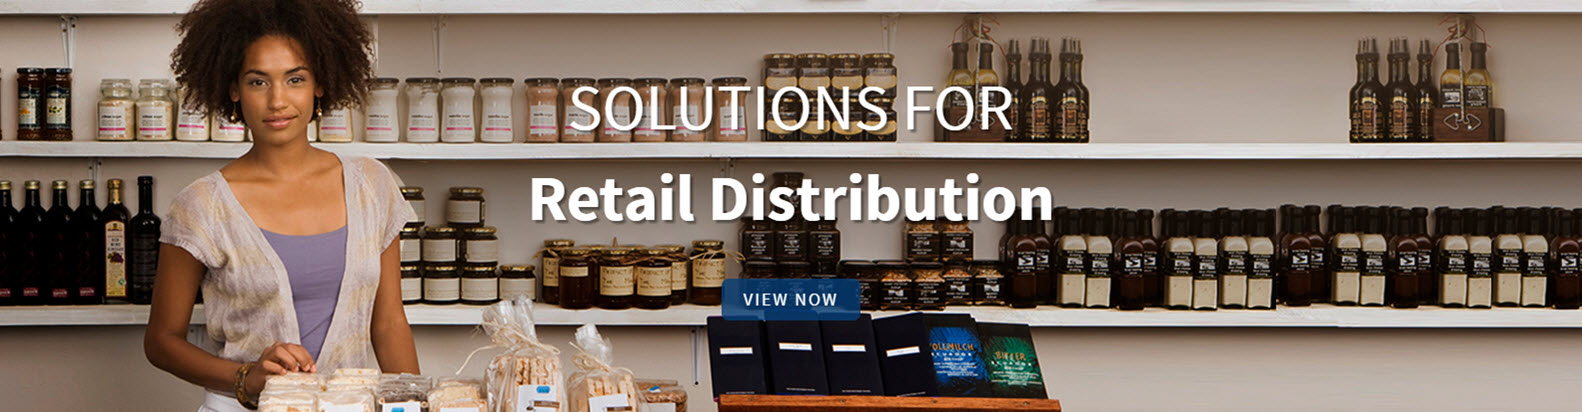 Retail Distribution